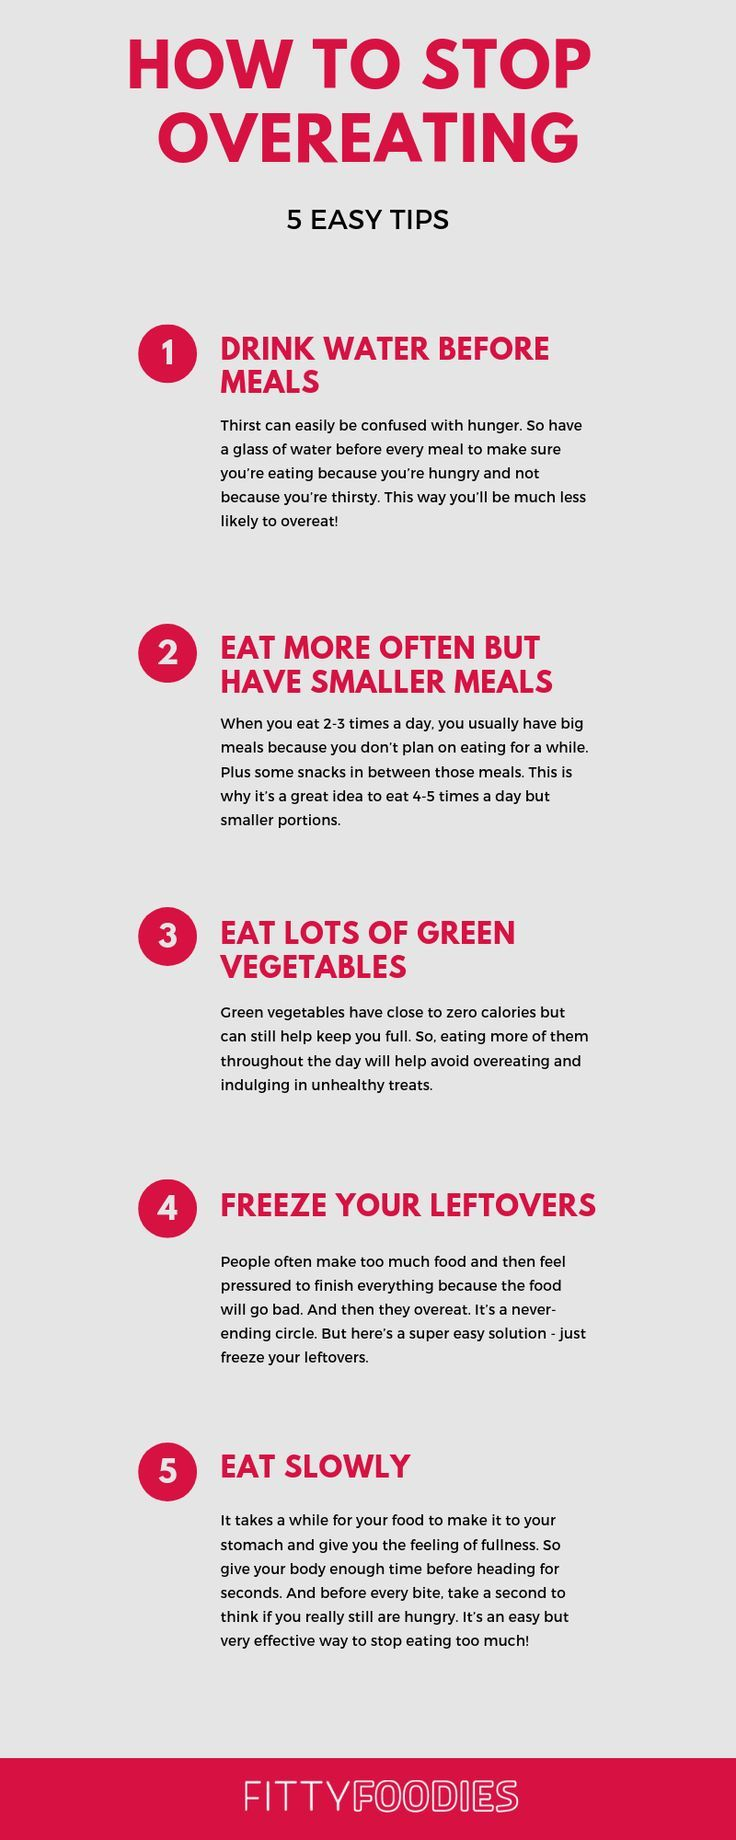 How To Stop Overeating: 5 Easy Tips